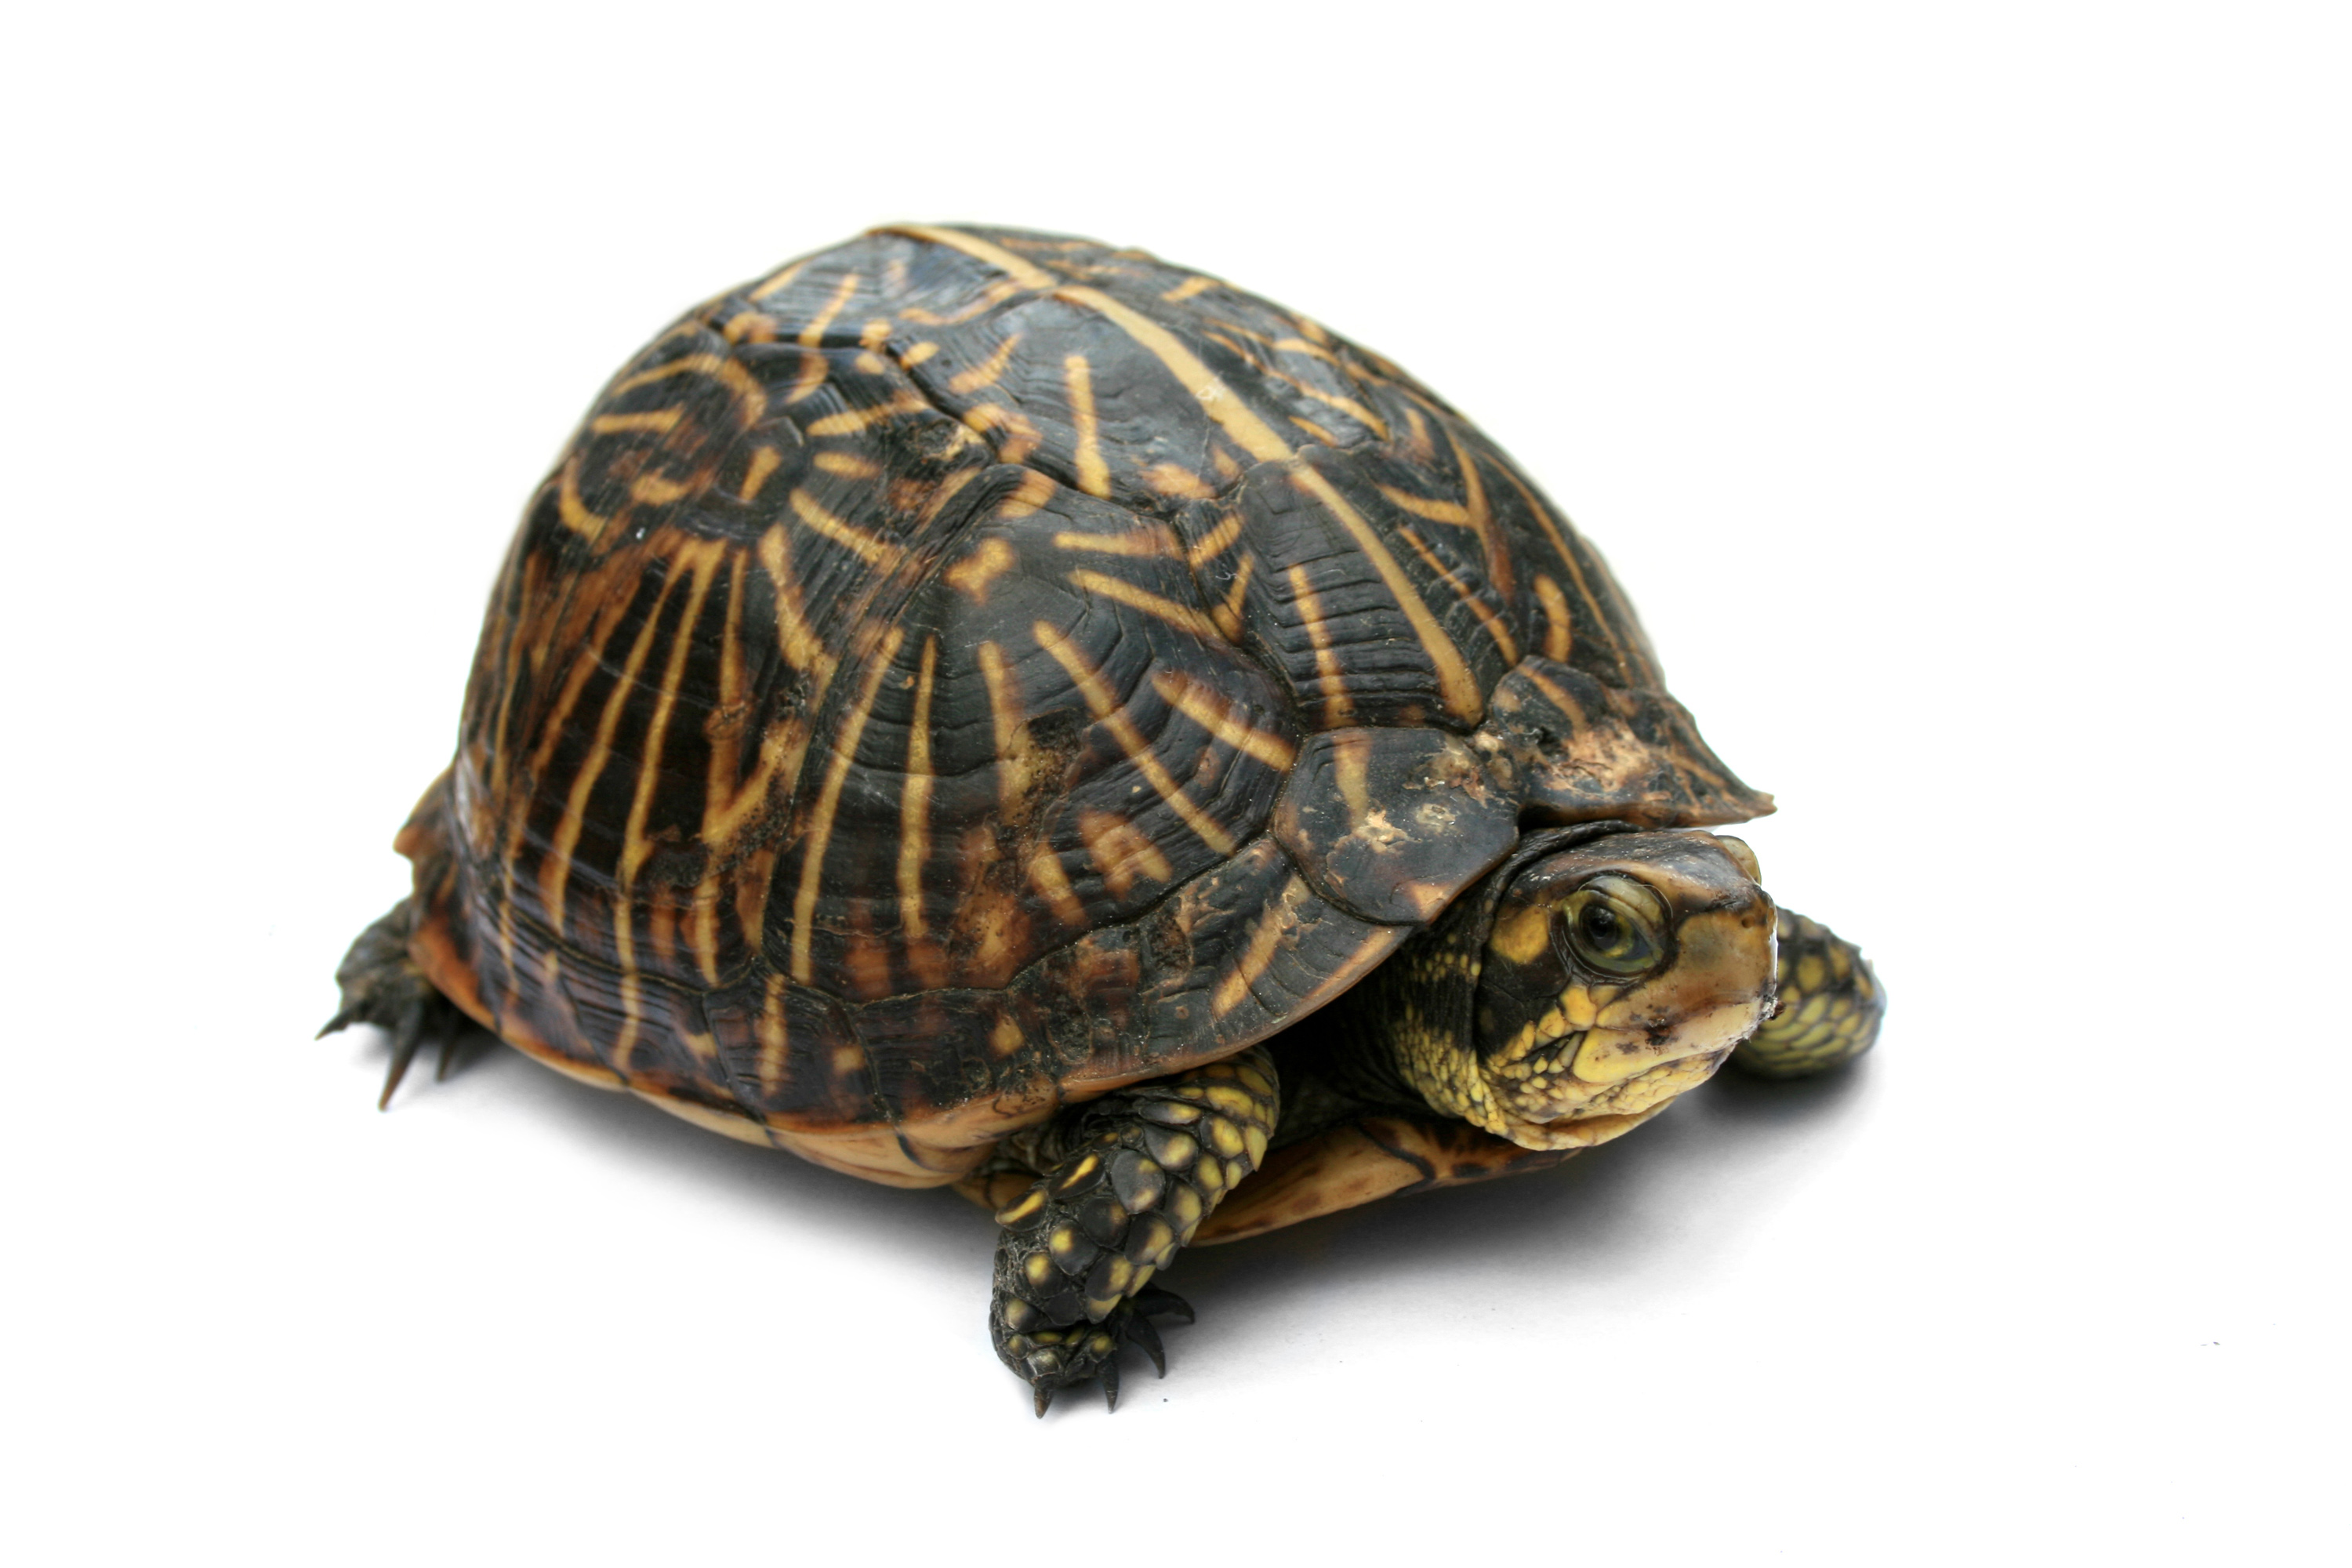 file florida box turtle digon3 jpg wikipedia